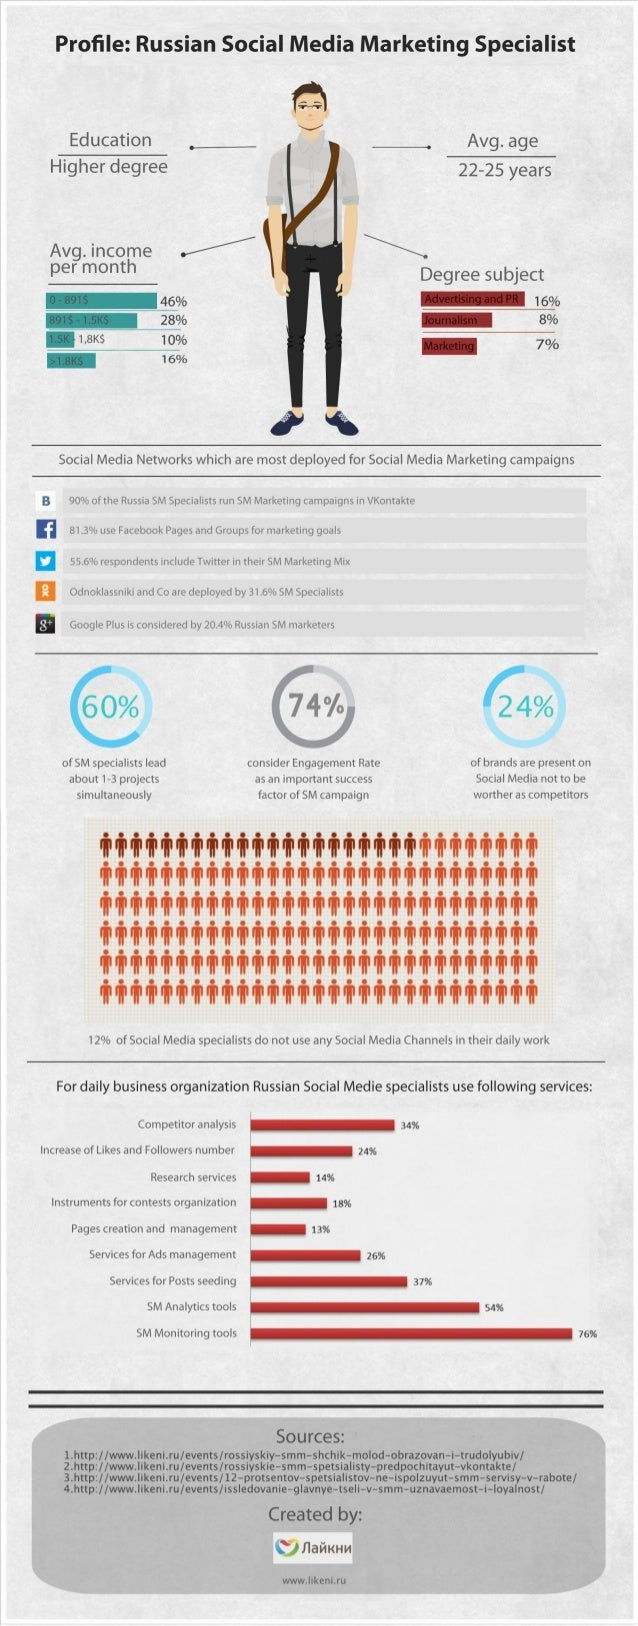 Infographic: Profile of Social Media Marketing Specialist in Russia.